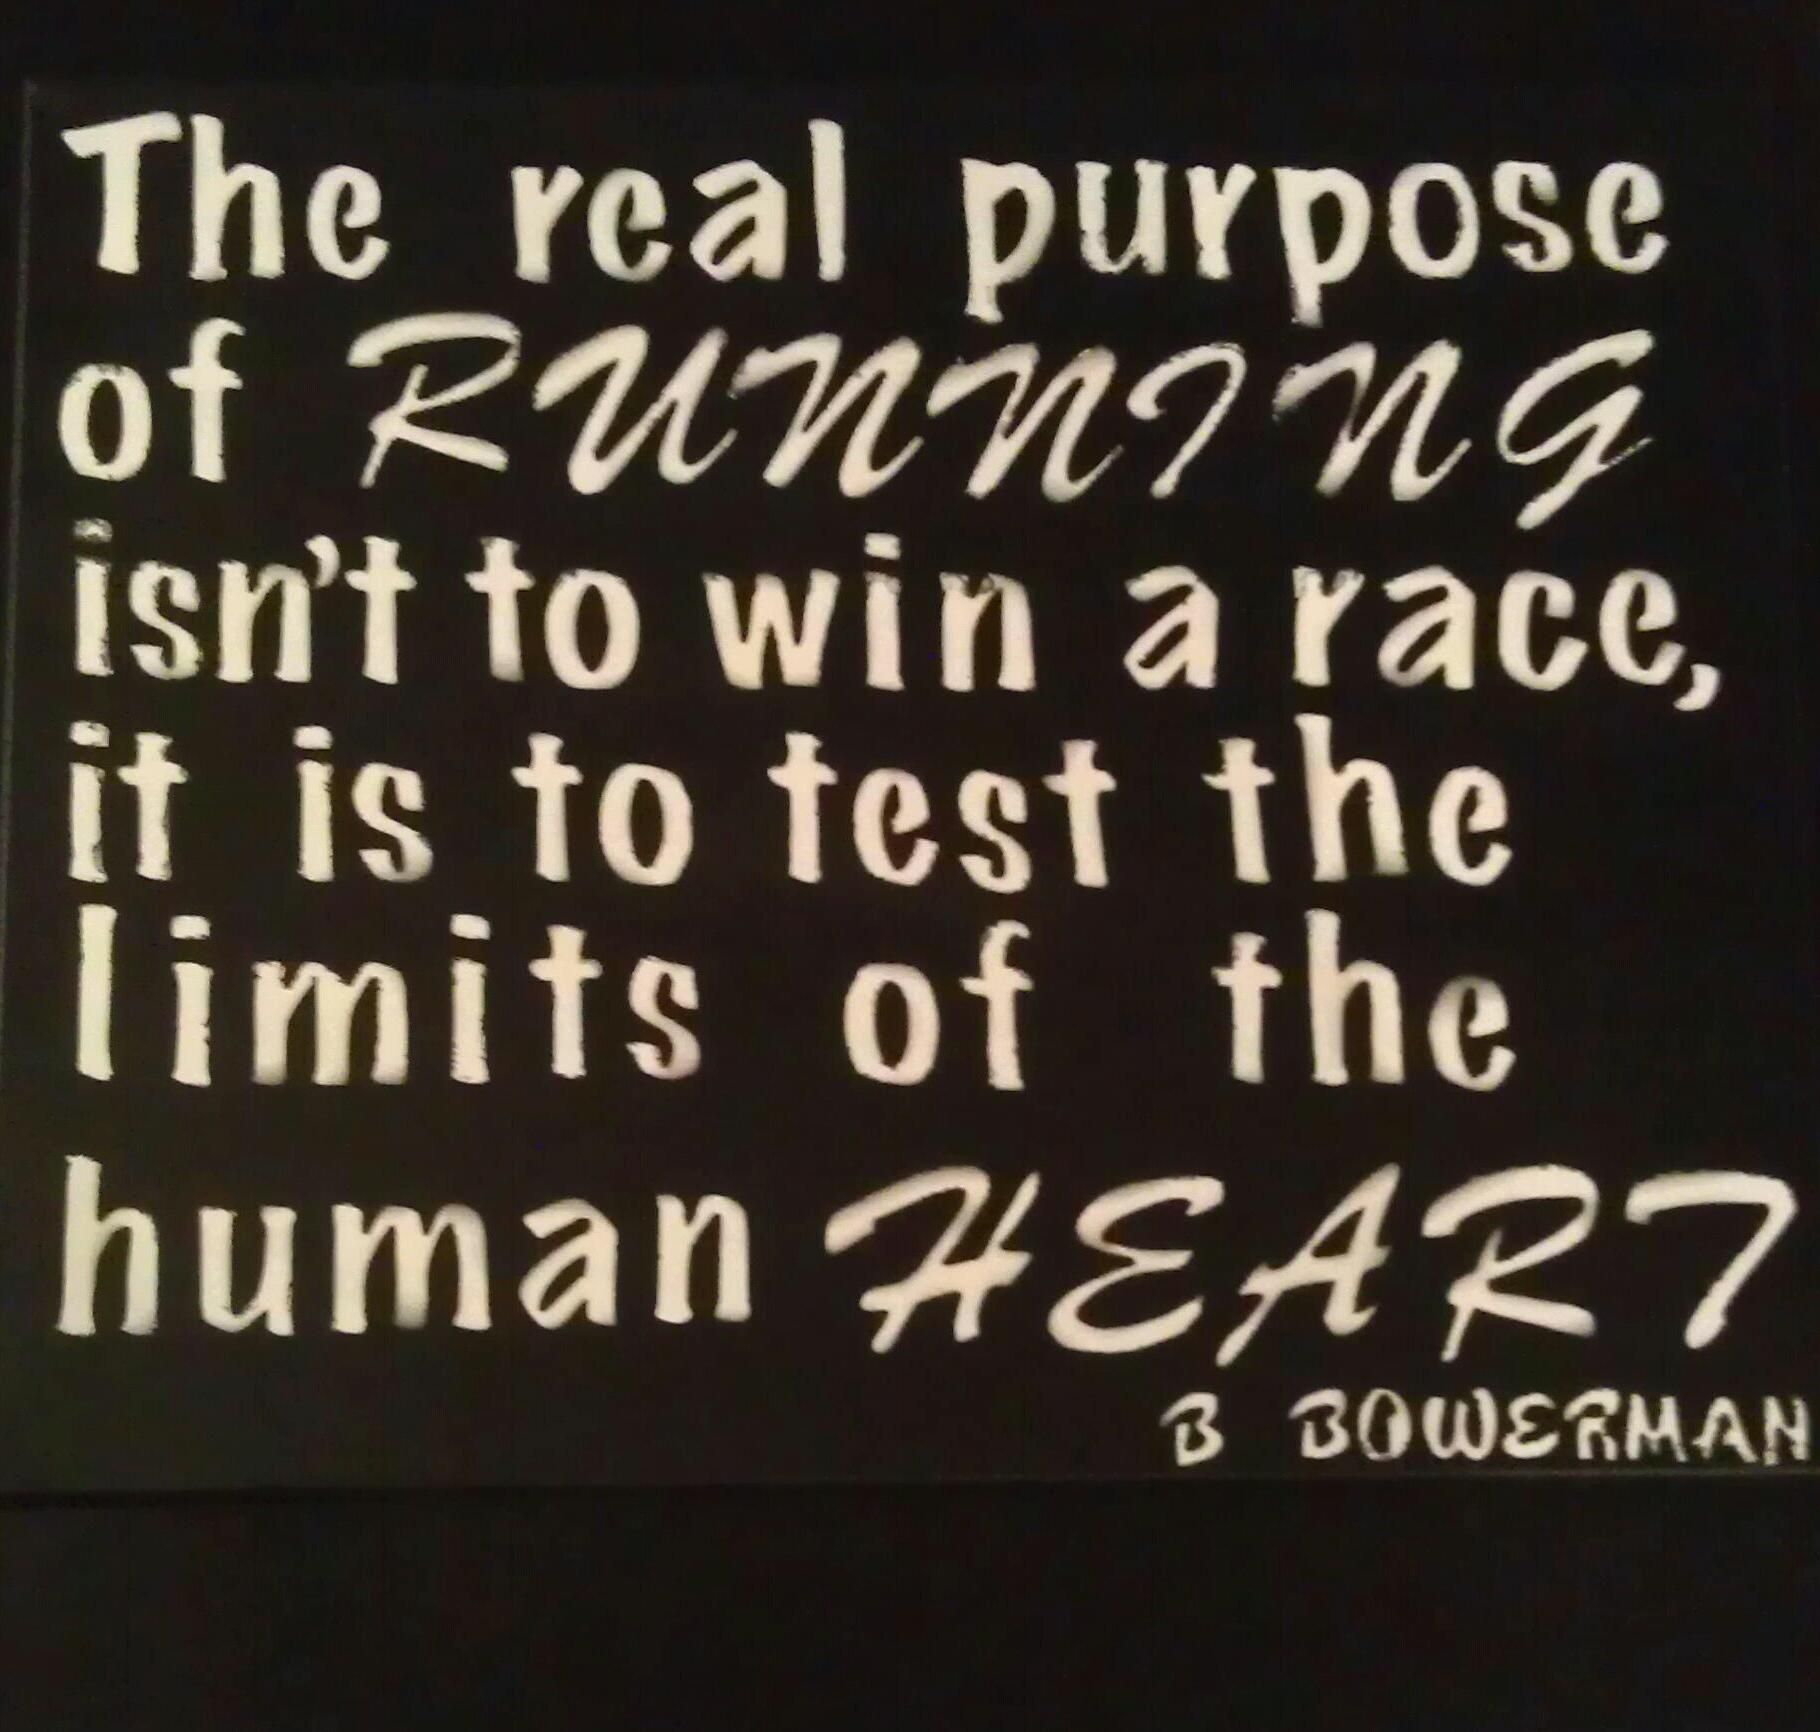 Cross Country Quotes One Of The Kids On My Son's Cross Country Team Said After We